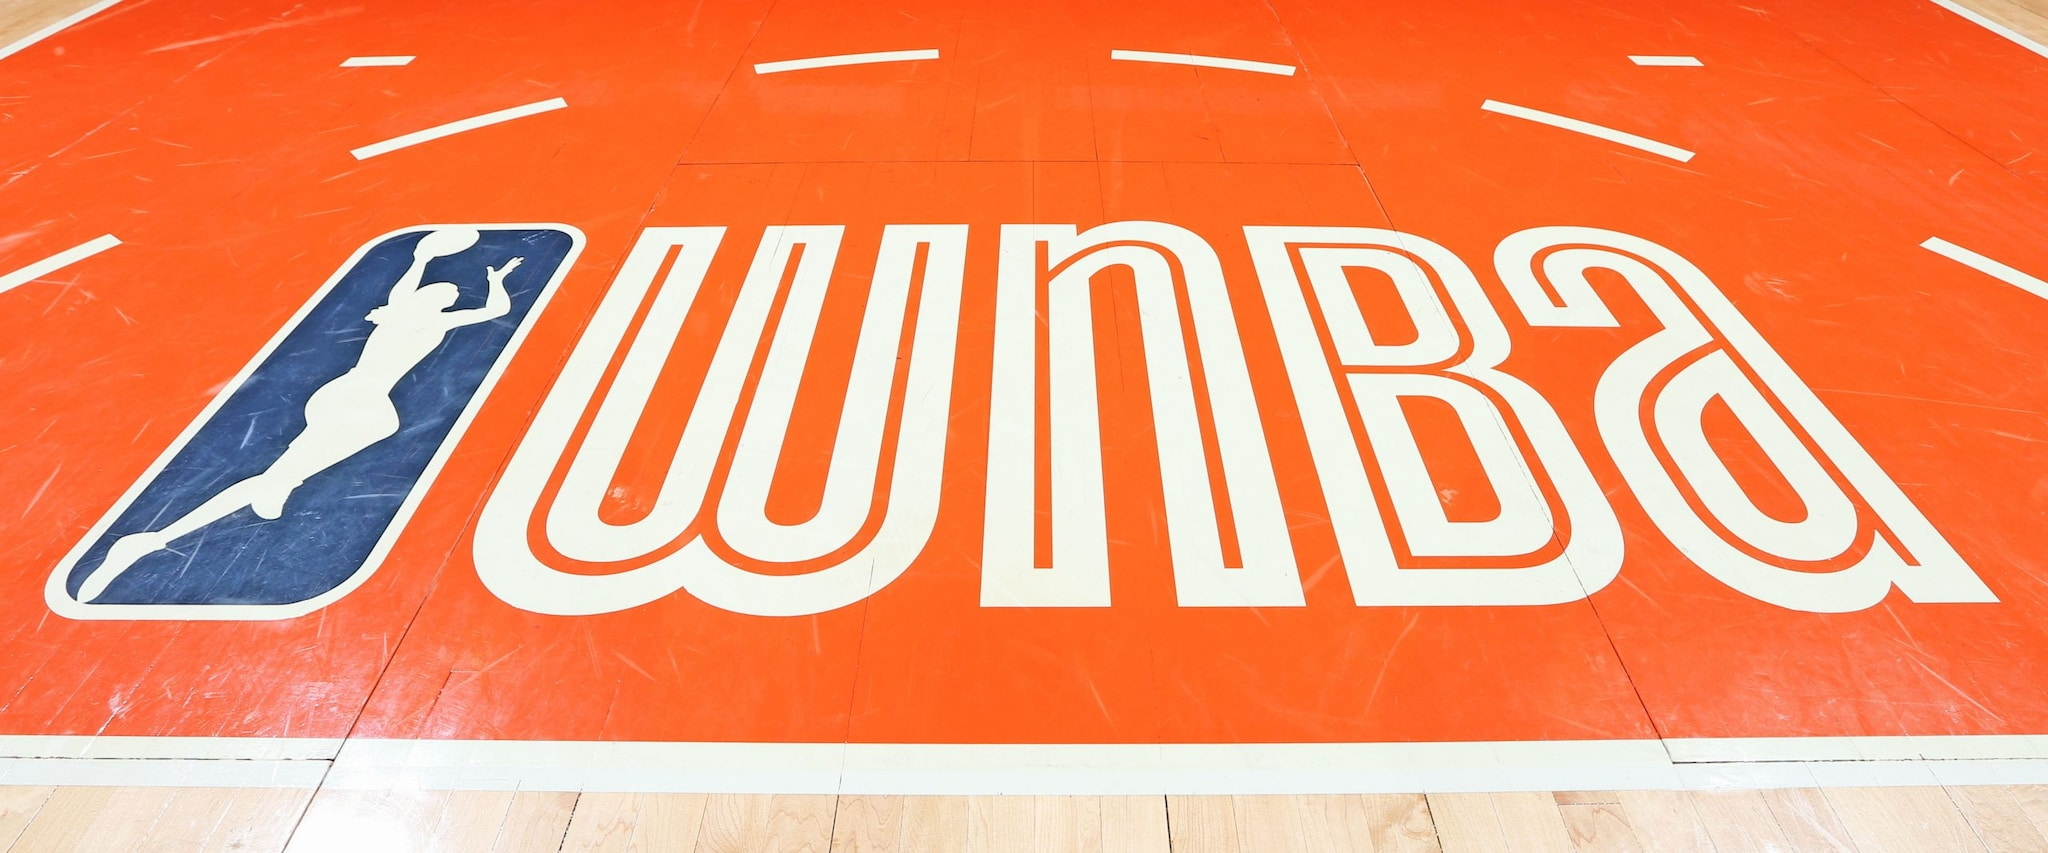 WNBA Draft 2020 Presented By State Farm To Be Held As Scheduled On April 17